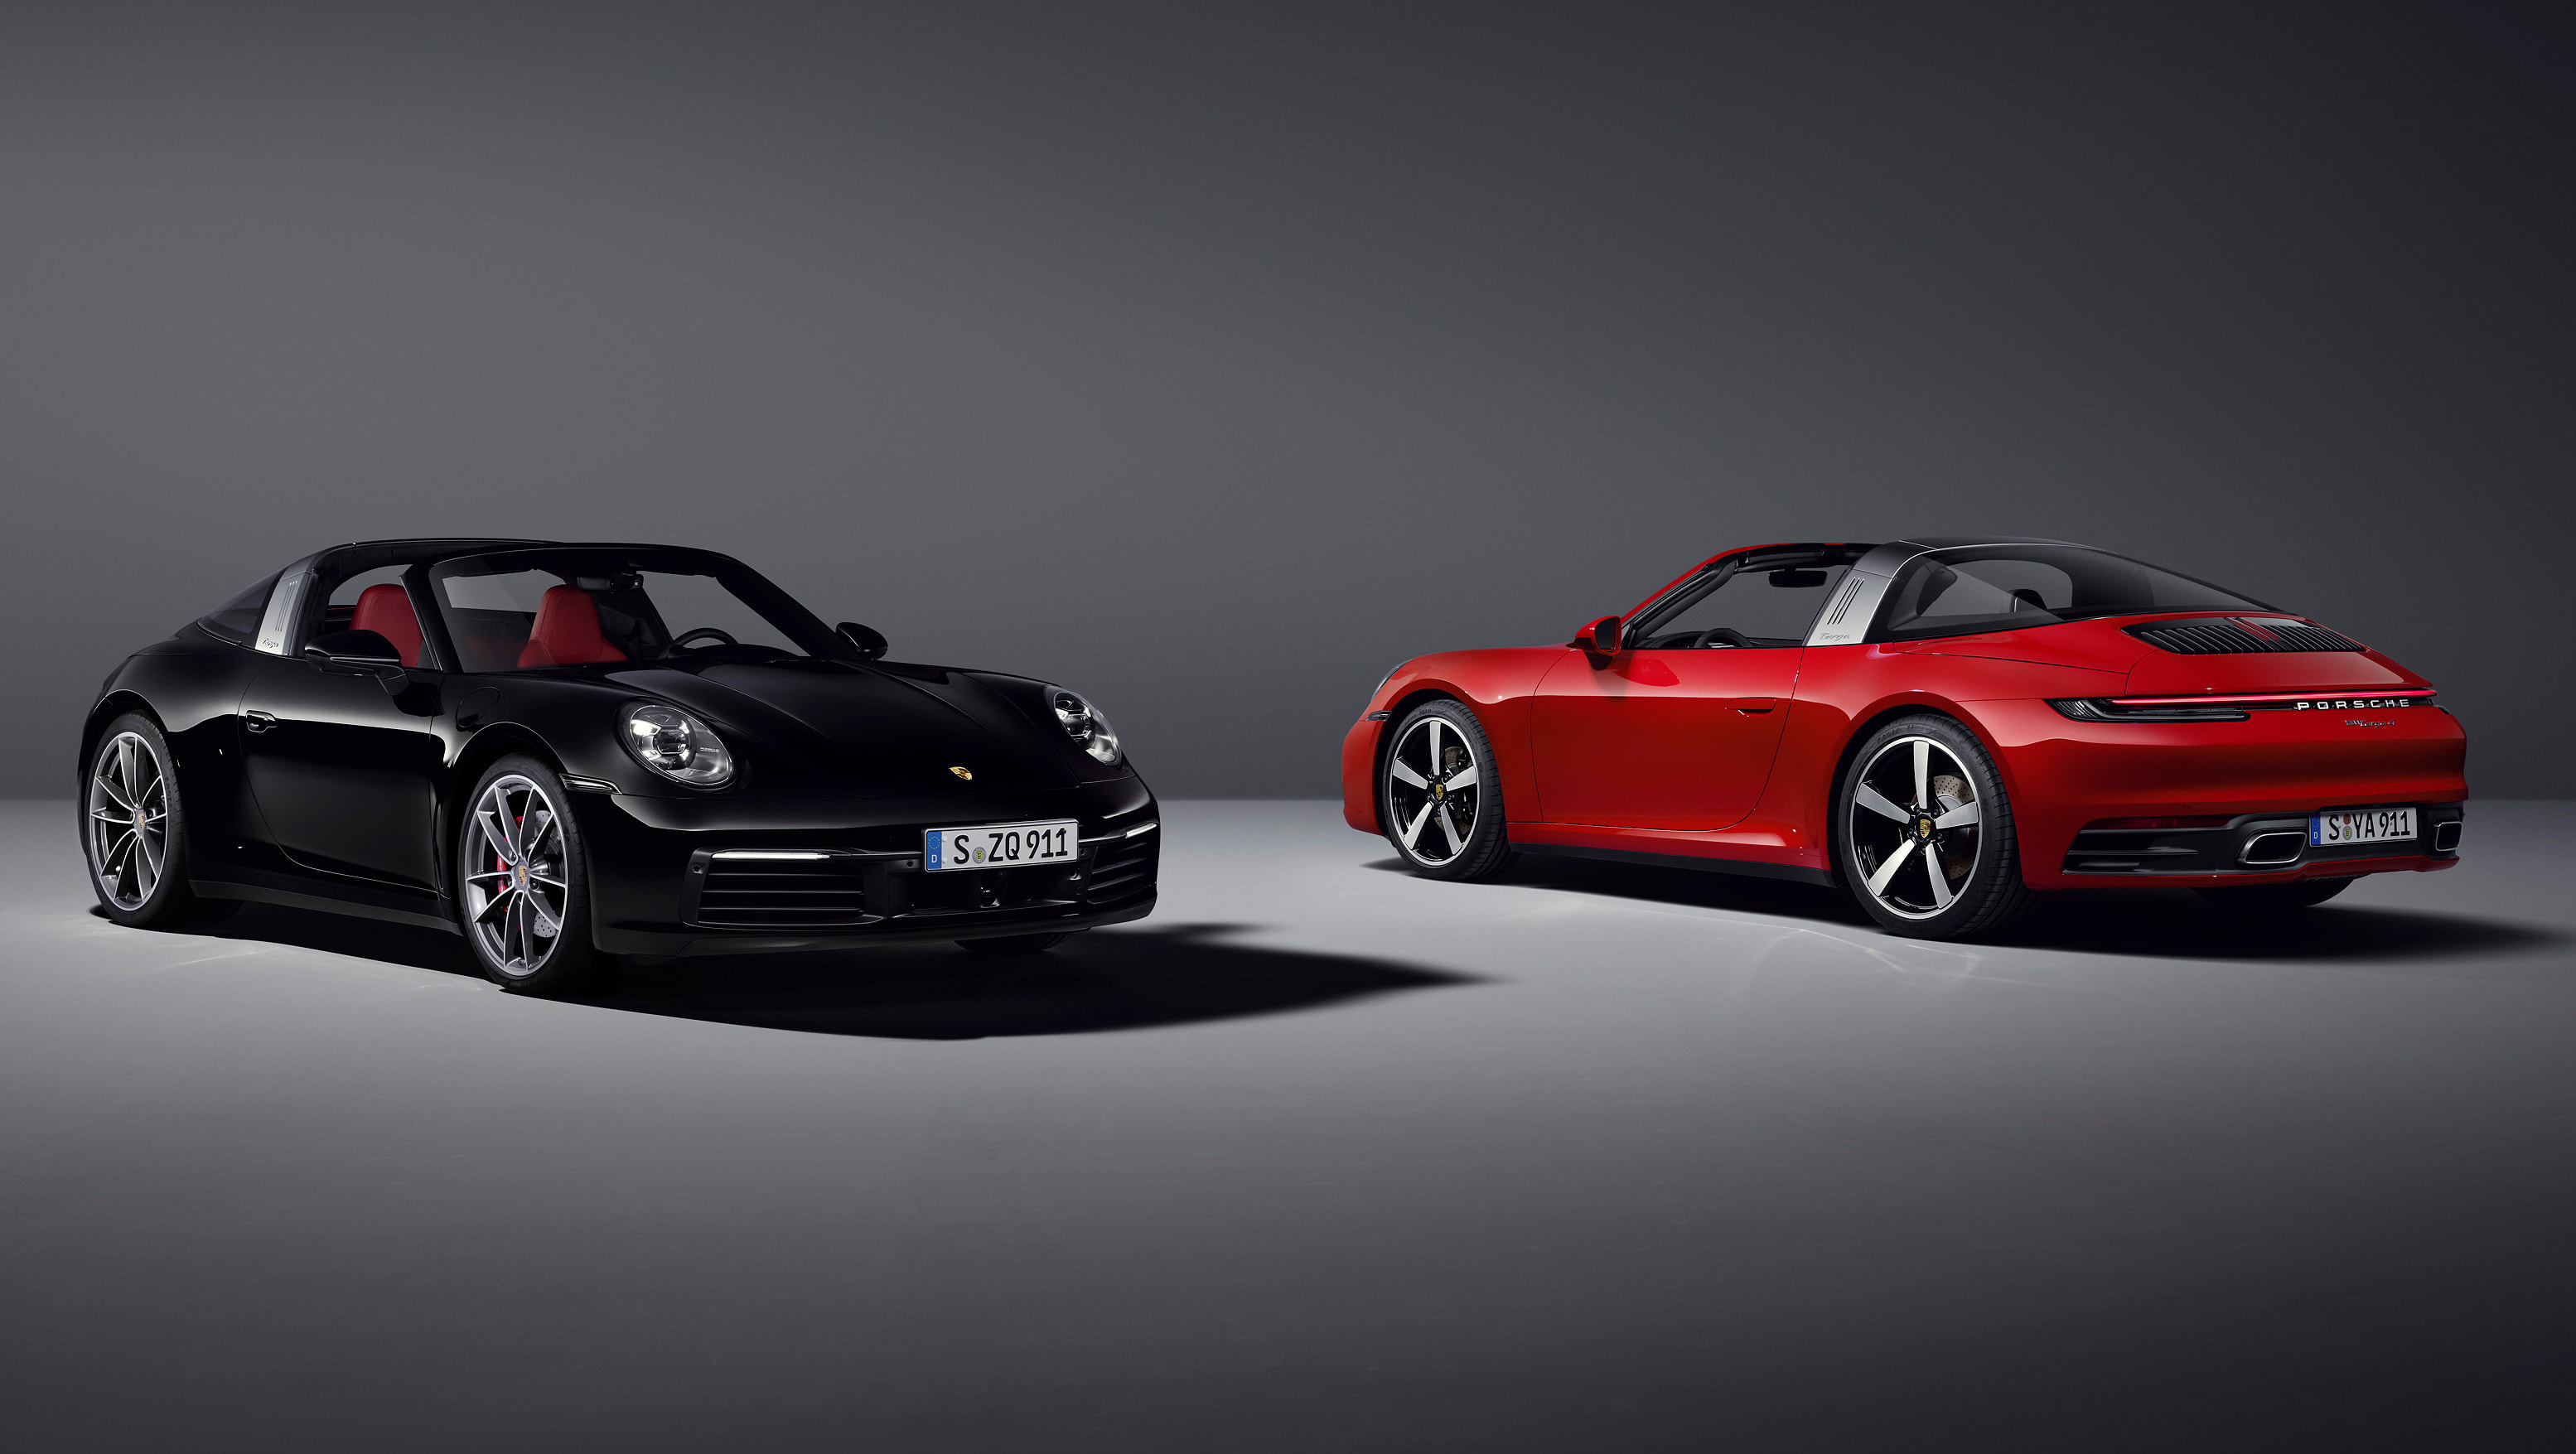 New Porsche 911 Targa 2020 Pricing And Specs Detailed Australia To Miss Out On Manual Version Car News Carsguide